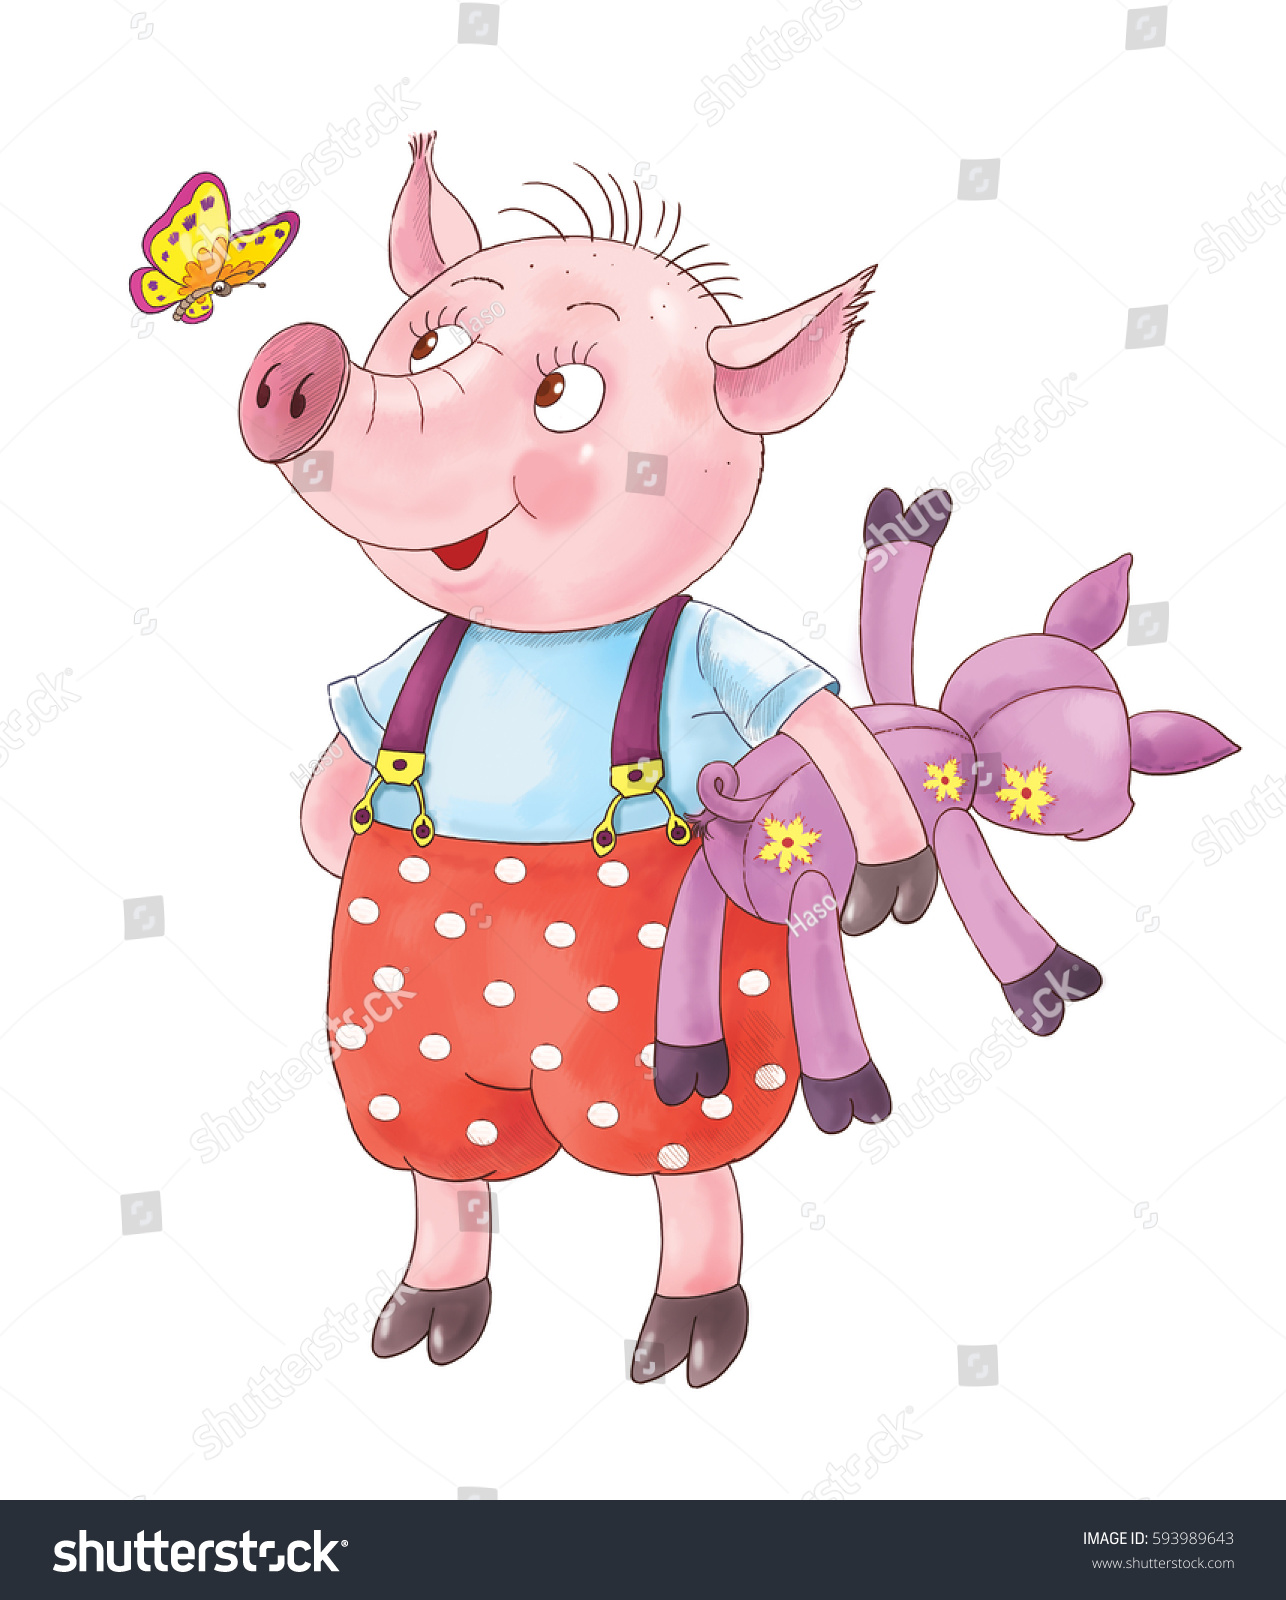 Three Little Pigs Fairy Tale Cute Stock Illustration - Royalty Free ...